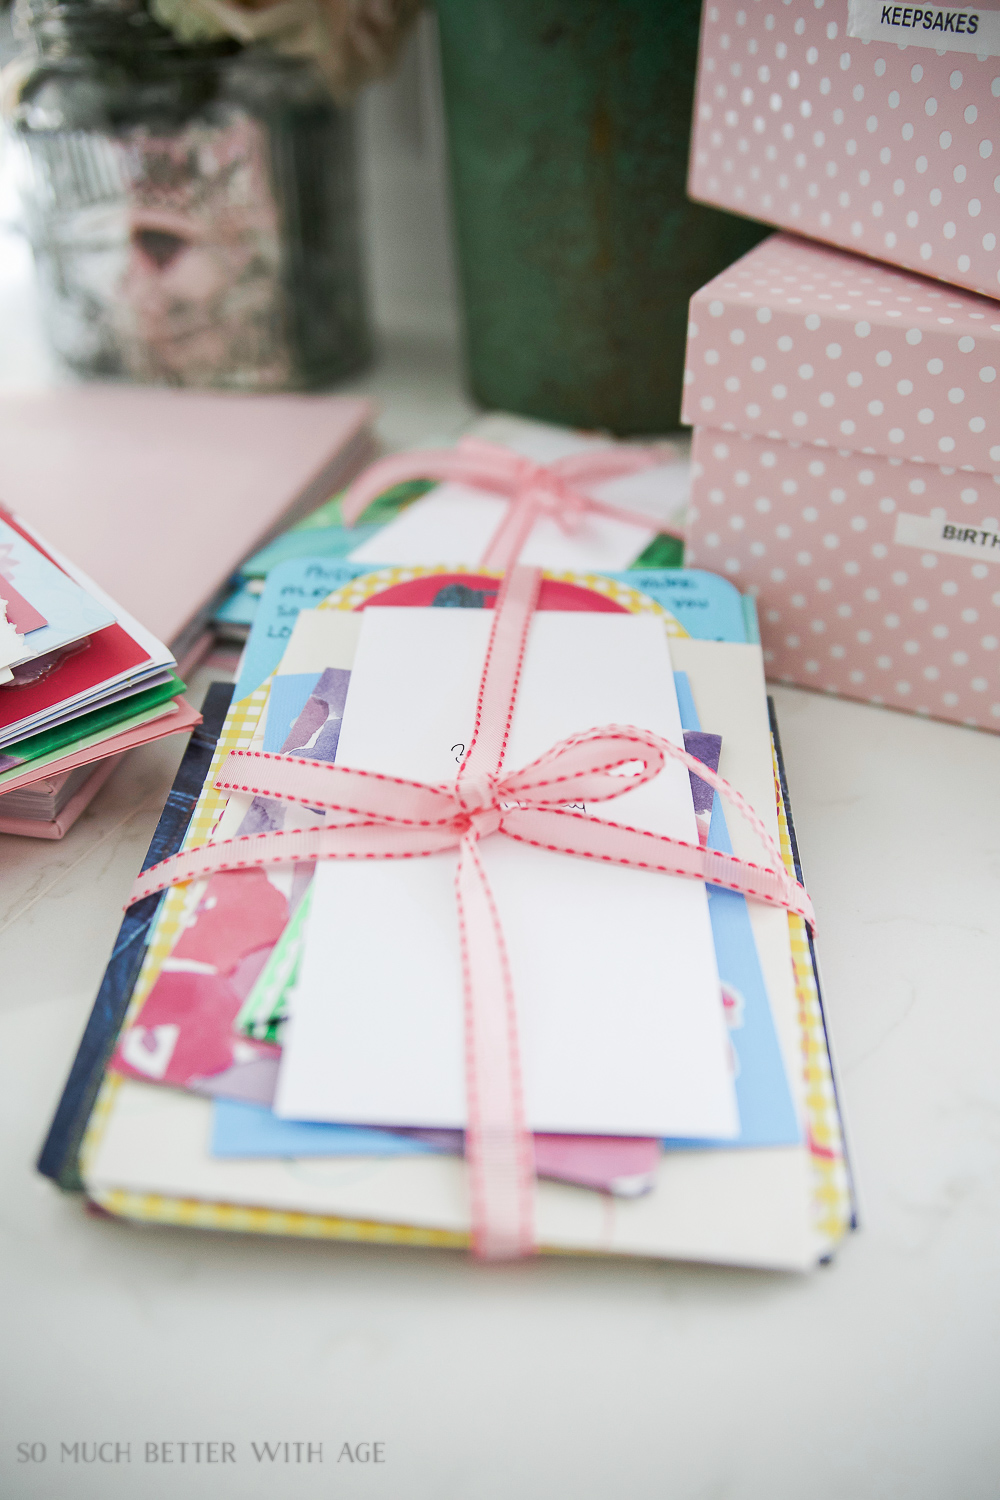 Organizing Kids Keepsakes (Birthday Cards) Printable/pink ribbon around cards - So Much Better With Age